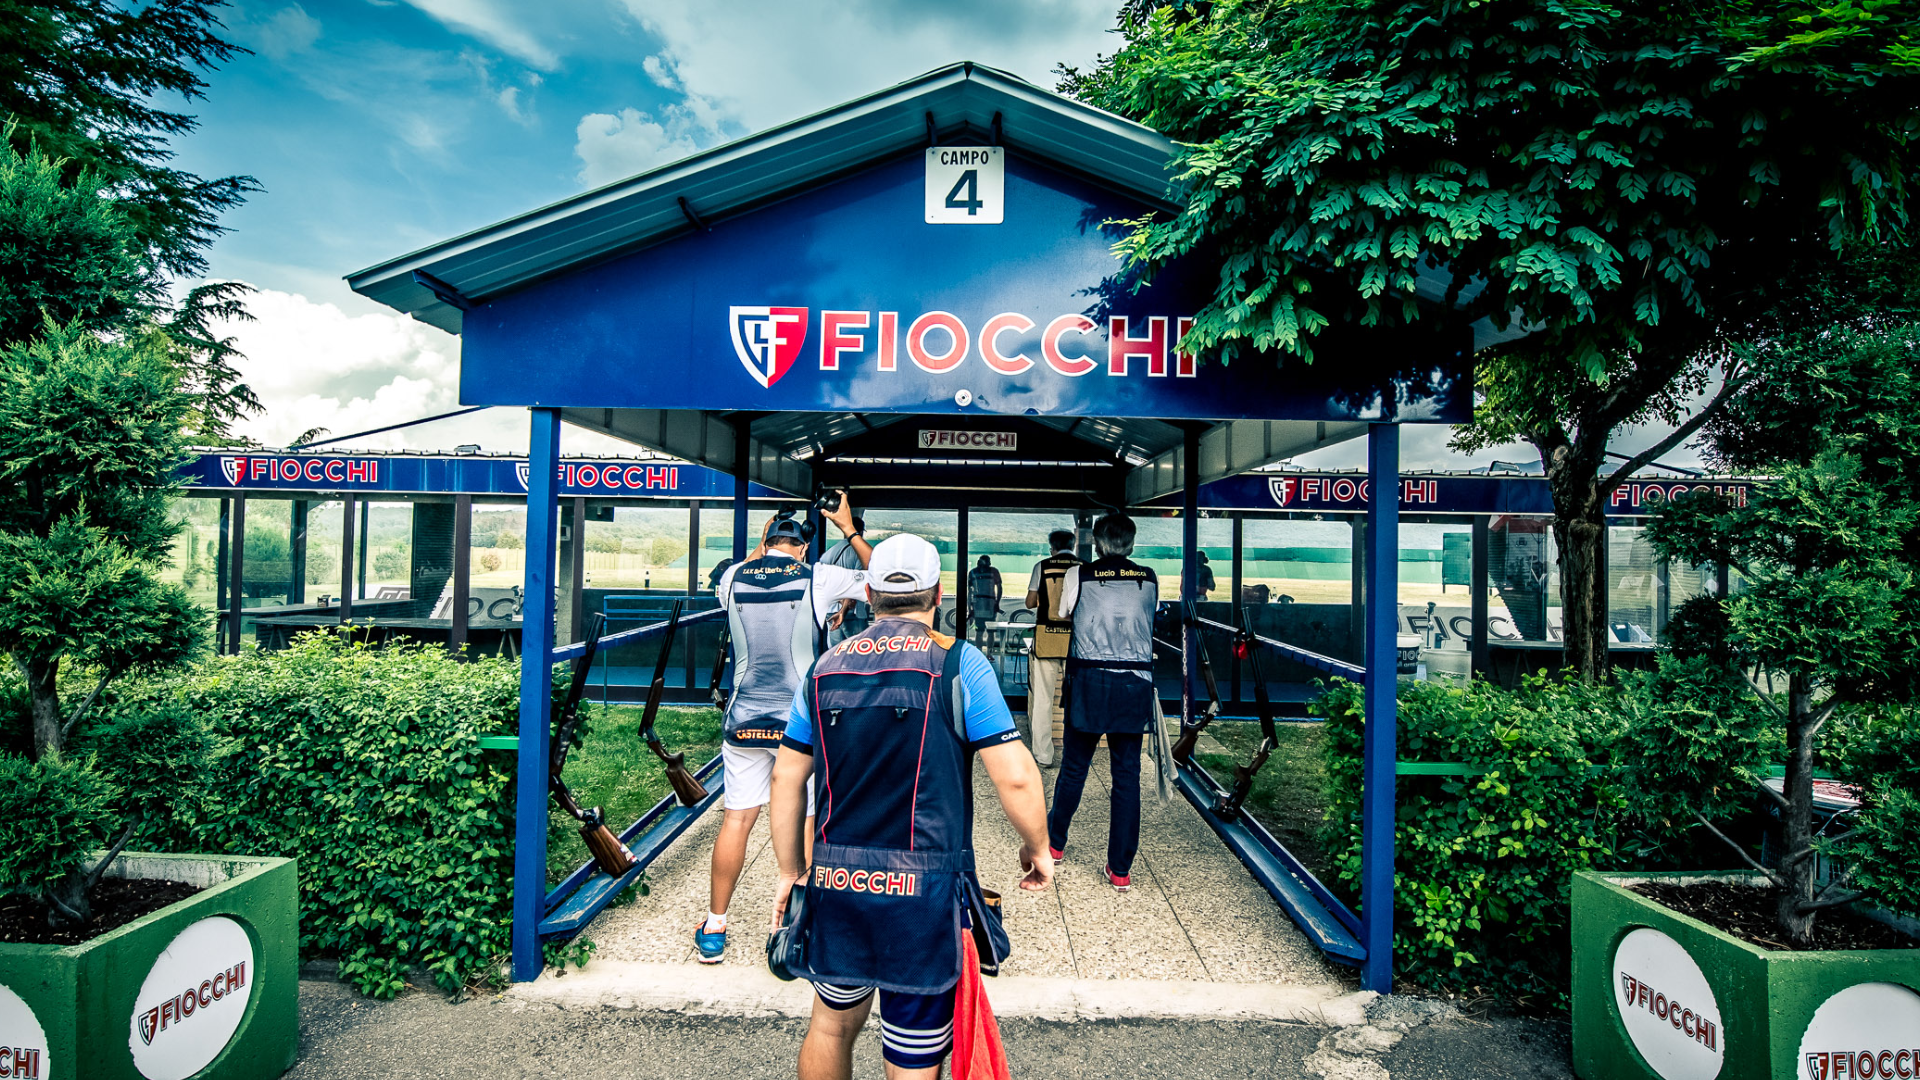 FIOCCHI DAY 2019 IS ABOUT TO BEGIN